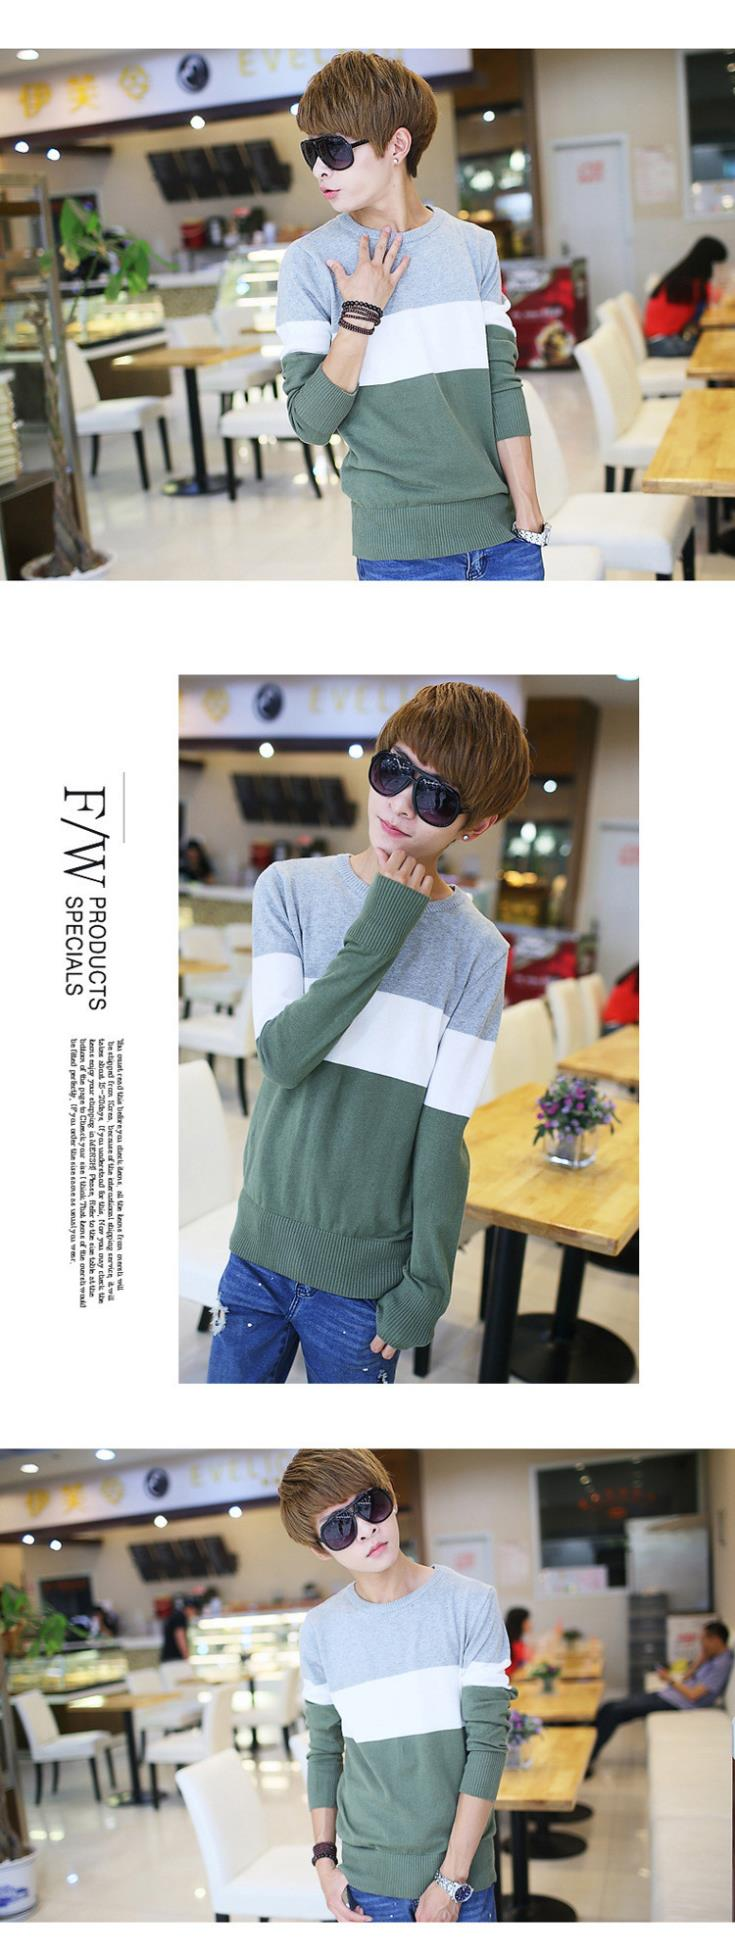 Z/&Y Glaa Mens Knitted Cardigan Thick Sweater Full Zip Stand Collar Warm Jumper Fleece Lined Winter Coat Mens New Stand Collar Fleece Knitted Sweater Cardigans Coat Knit Cardigan Thick Sweater